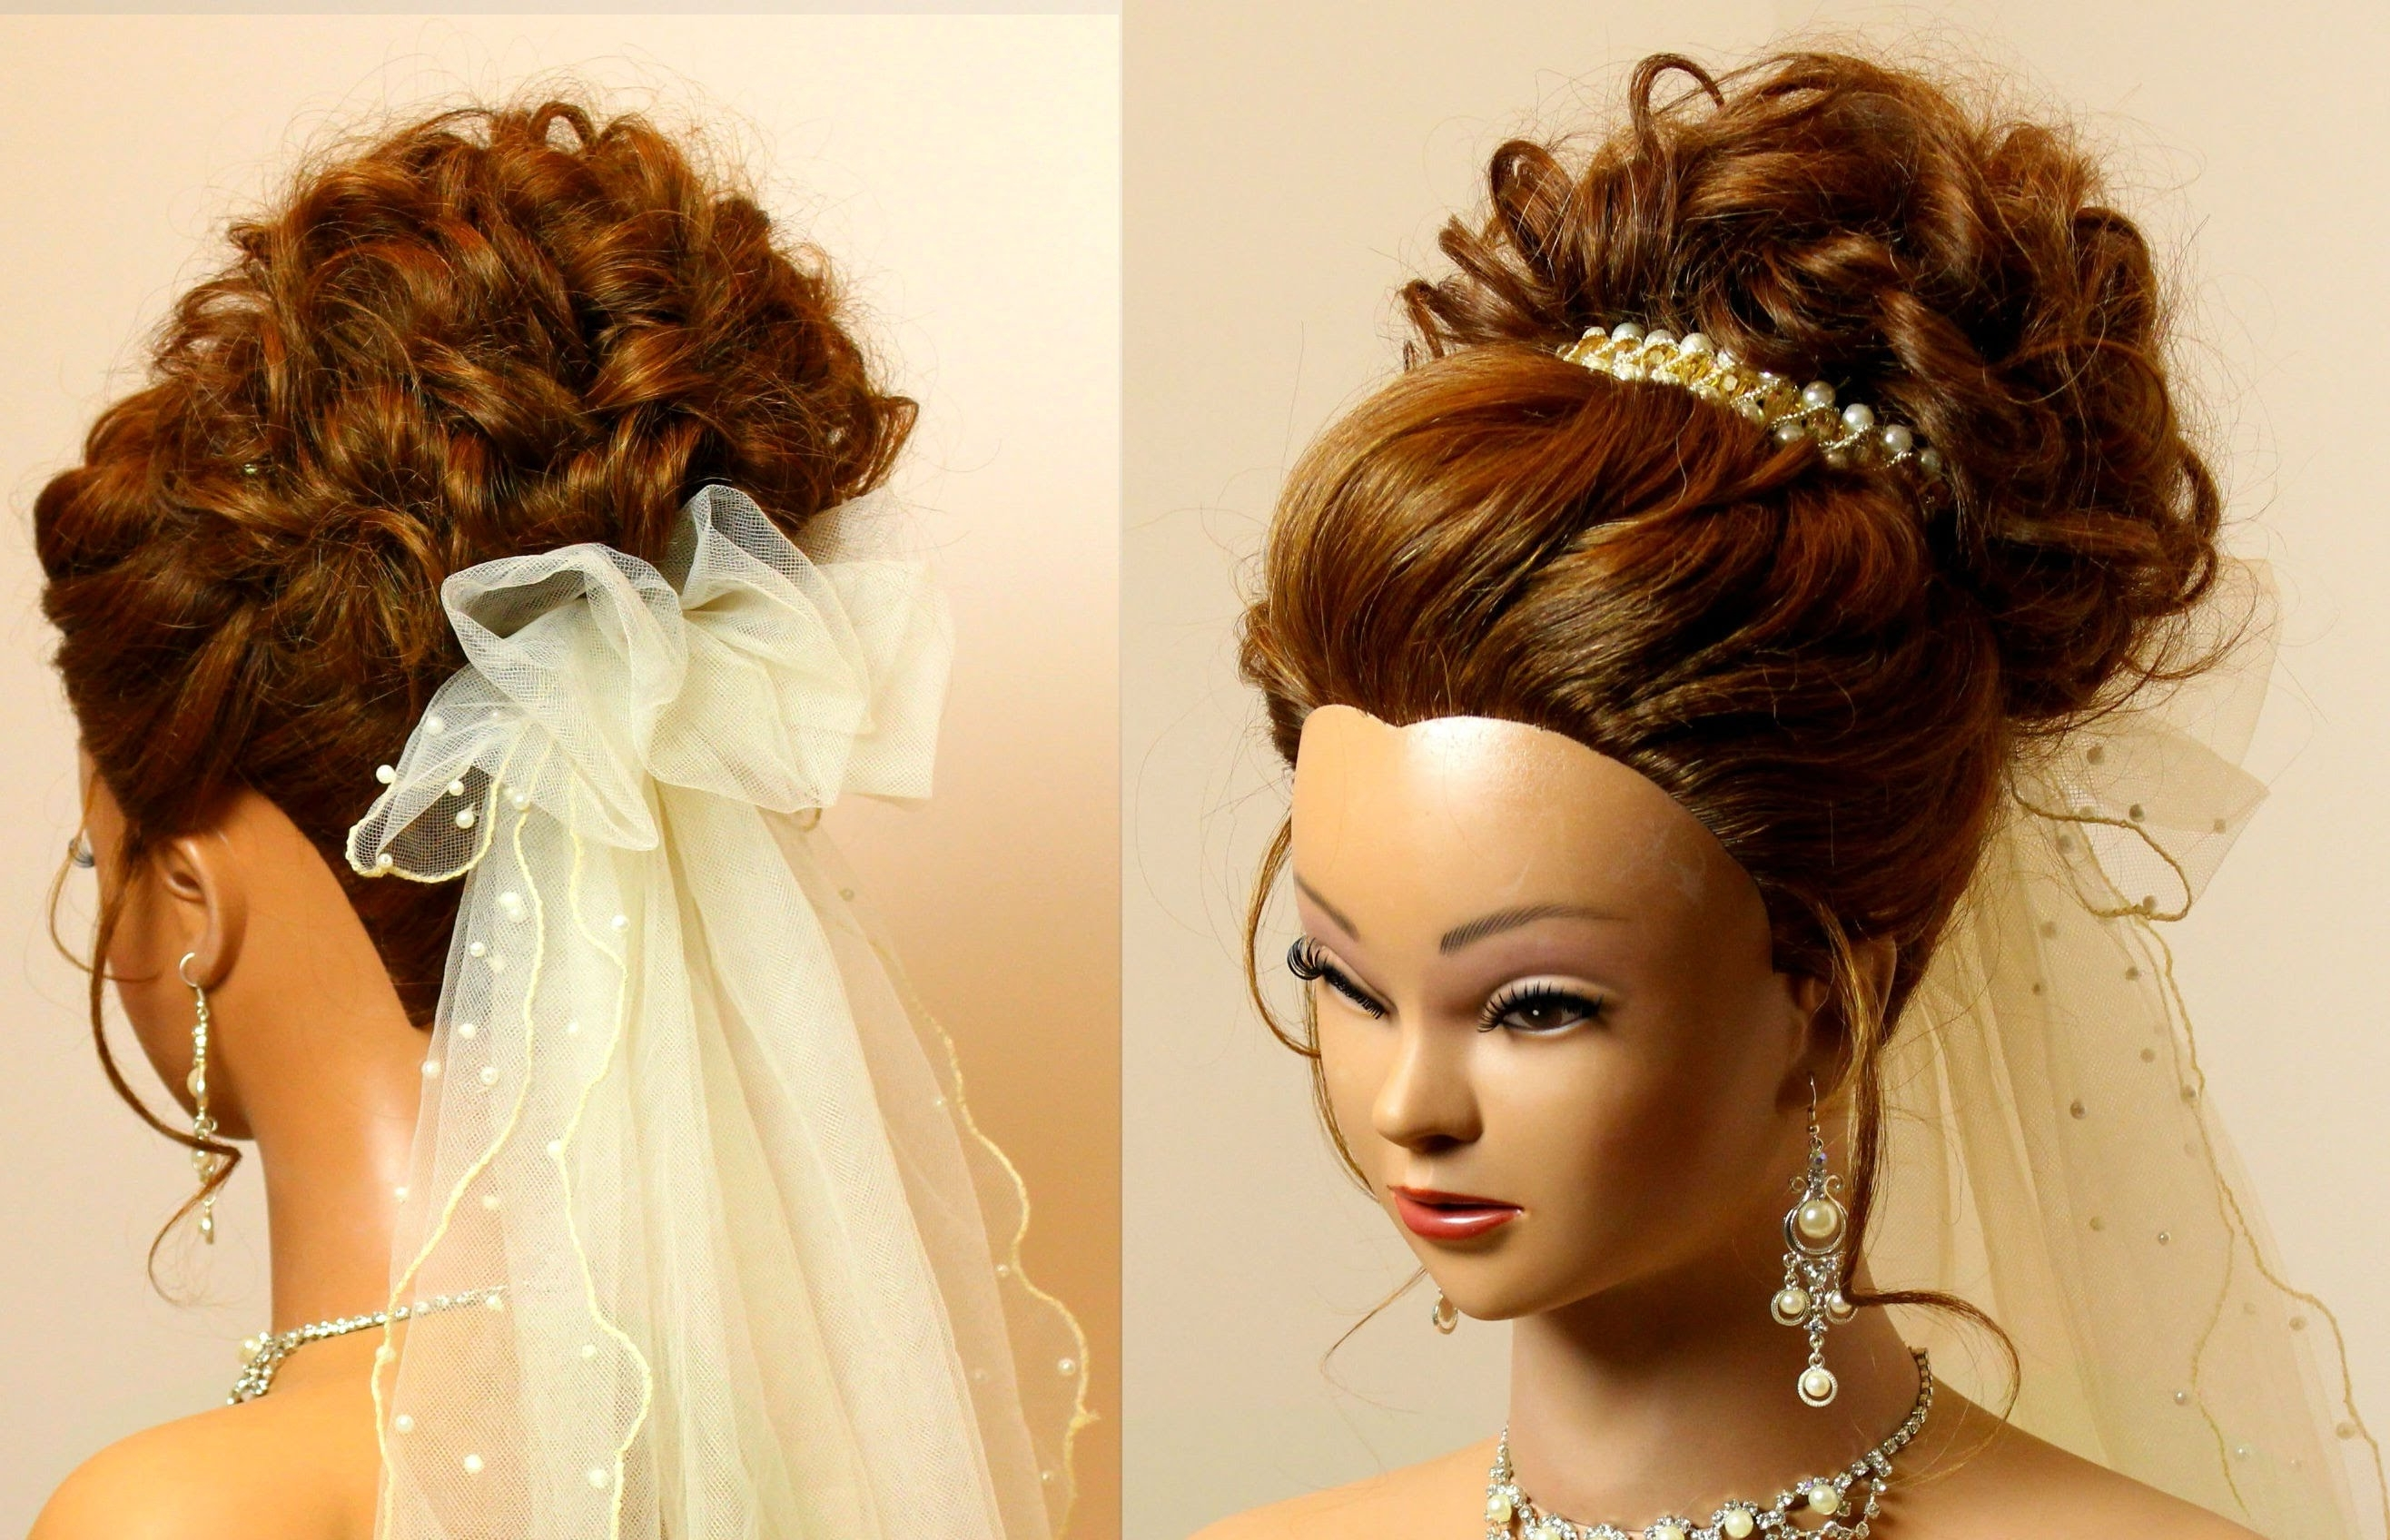 Updo Hairstyles For Medium Hair – Hairstyle For Women & Man With Regard To Bridal Updo Hairstyles For Long Hair (View 6 of 15)